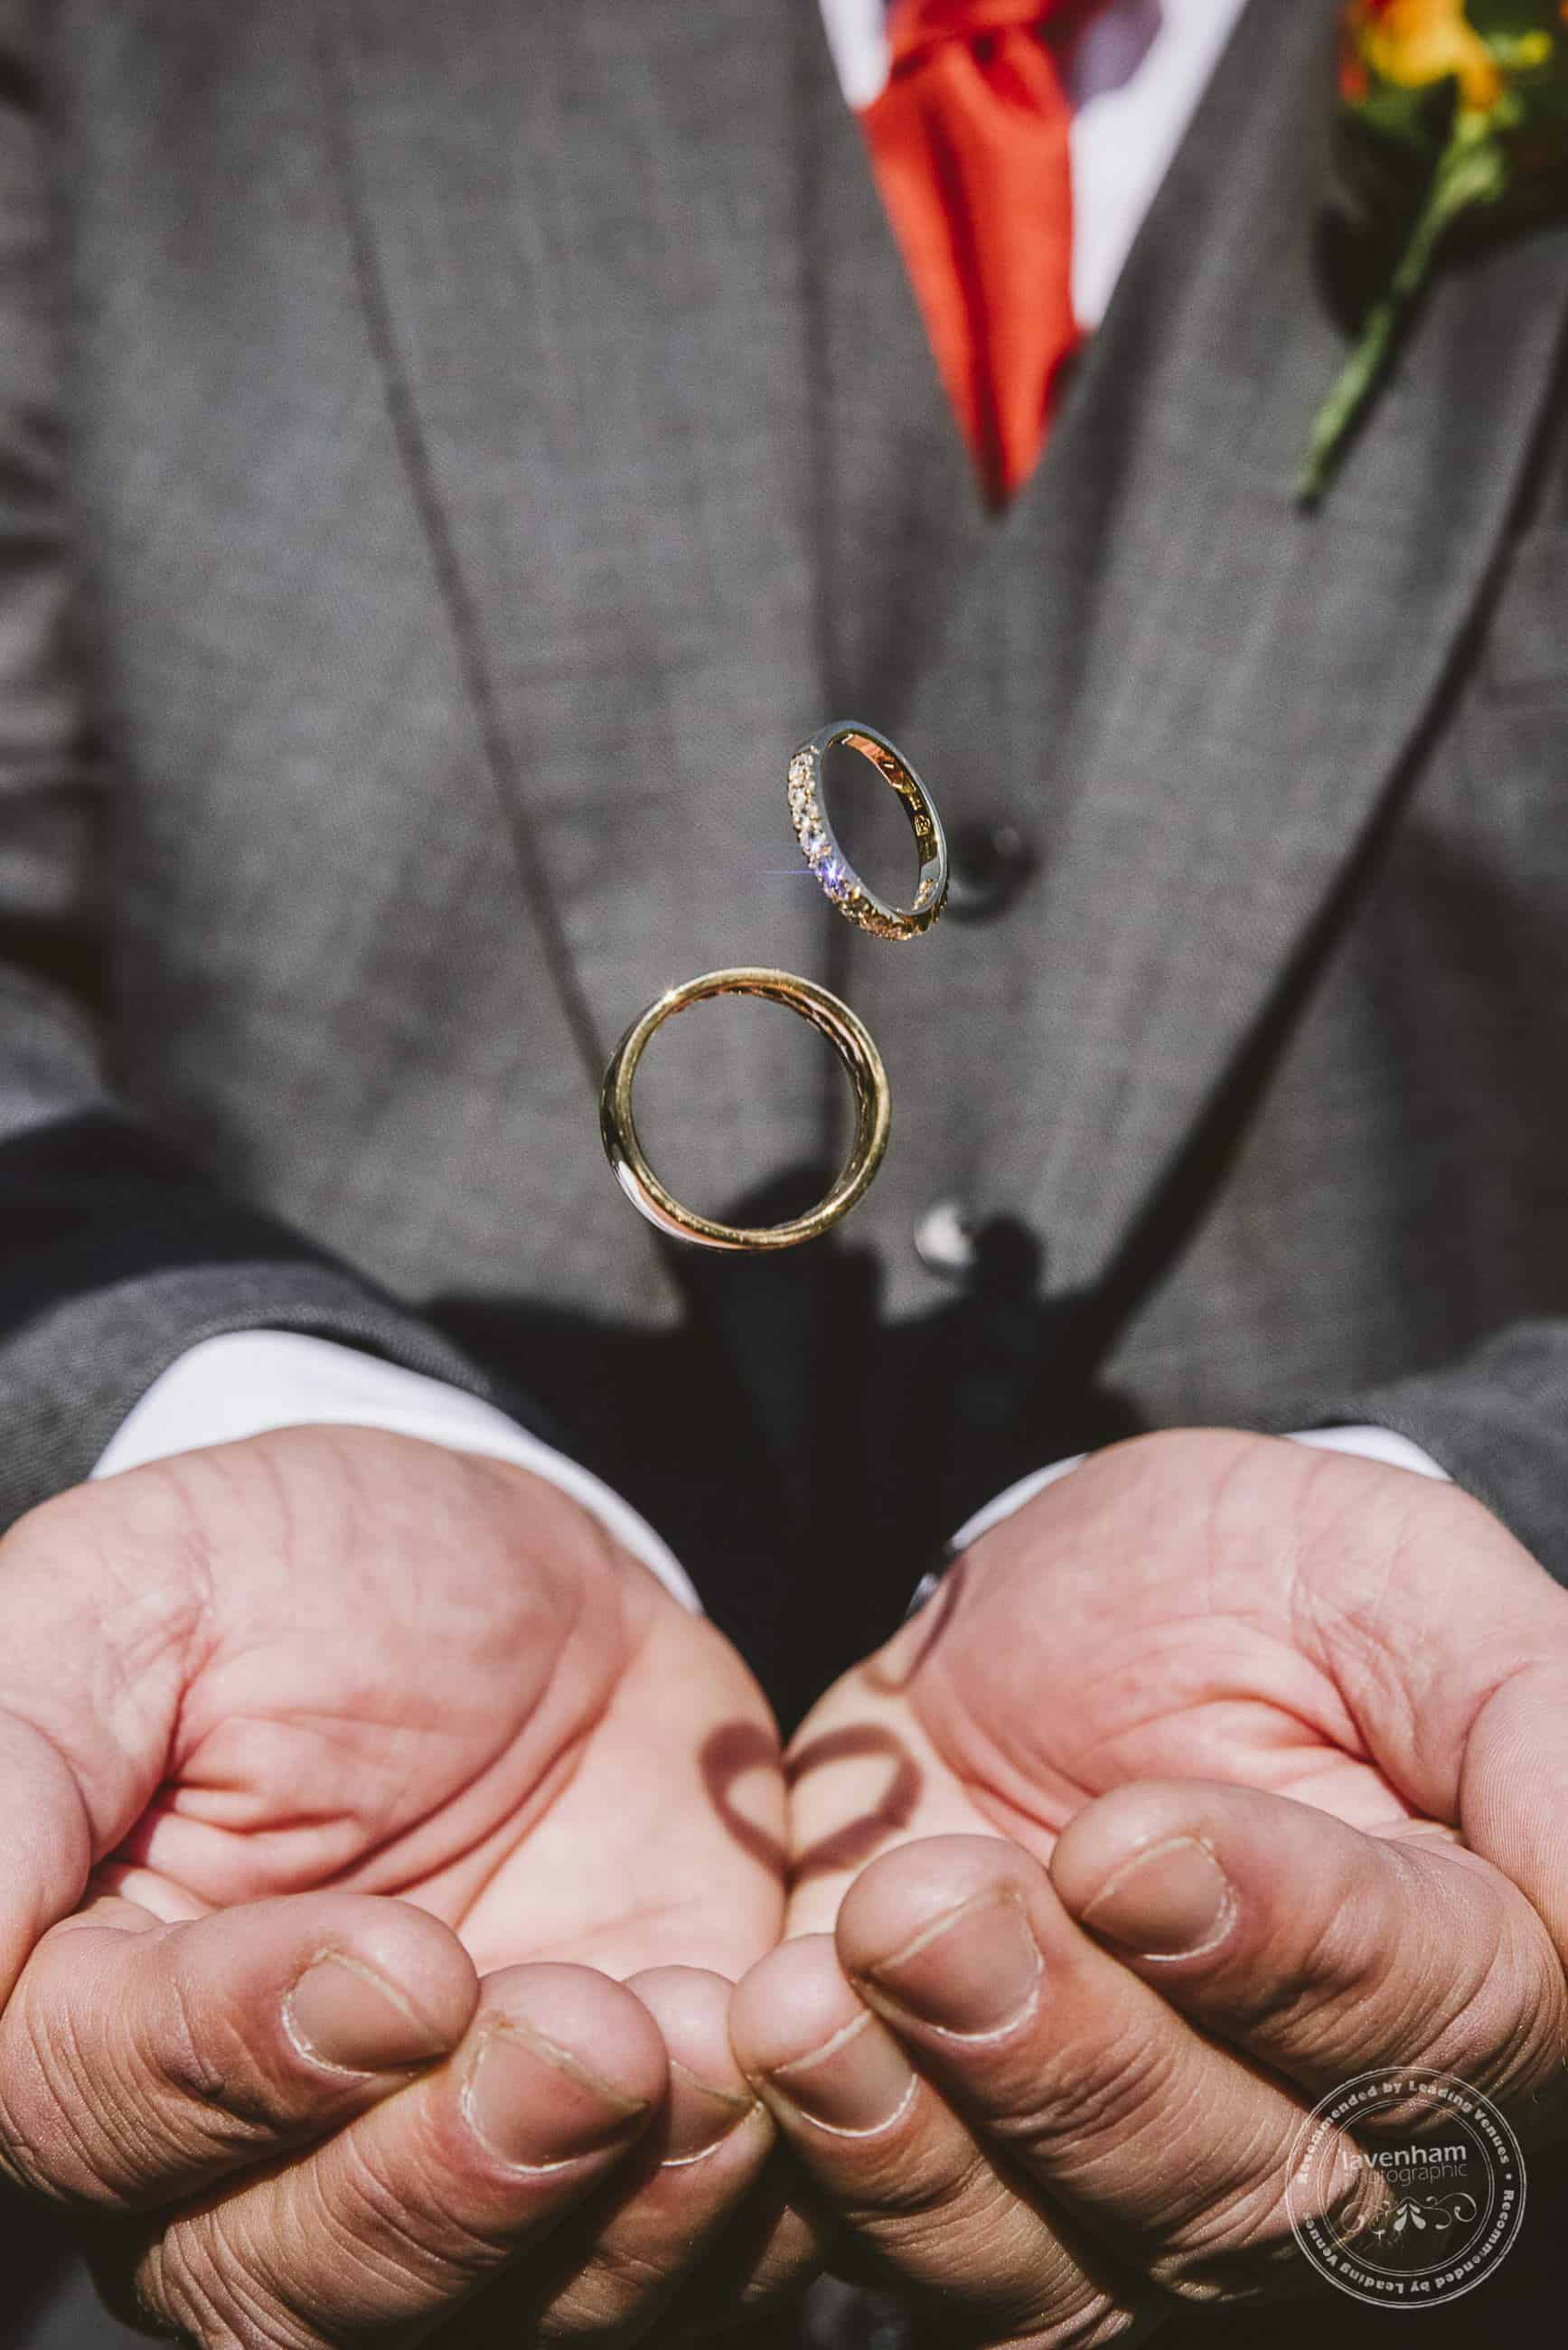 This photo is a great way of showing the ring details, with a background of the wedding suit's colours. An added bonus in this example is the heart-shape made by the shade falling on the hands!